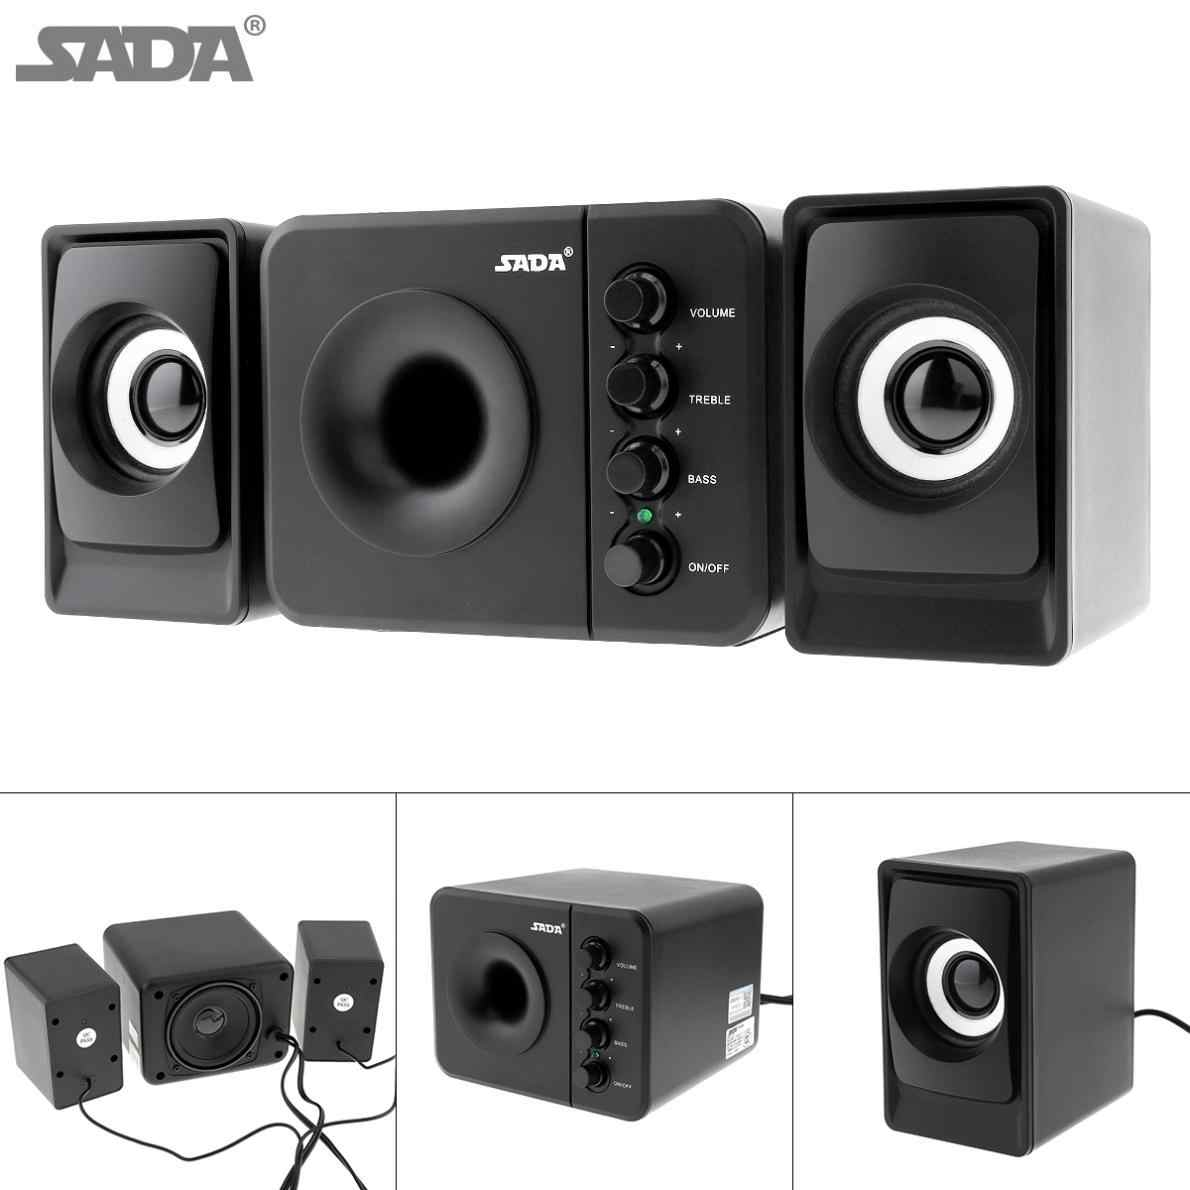 SADA D-205 USB2.0 Subwoofer Komputer Speaker dengan 3.5 Mm Audio Plug dan USB Power Plug untuk Desktop PC Laptop MP3 ponsel MP4